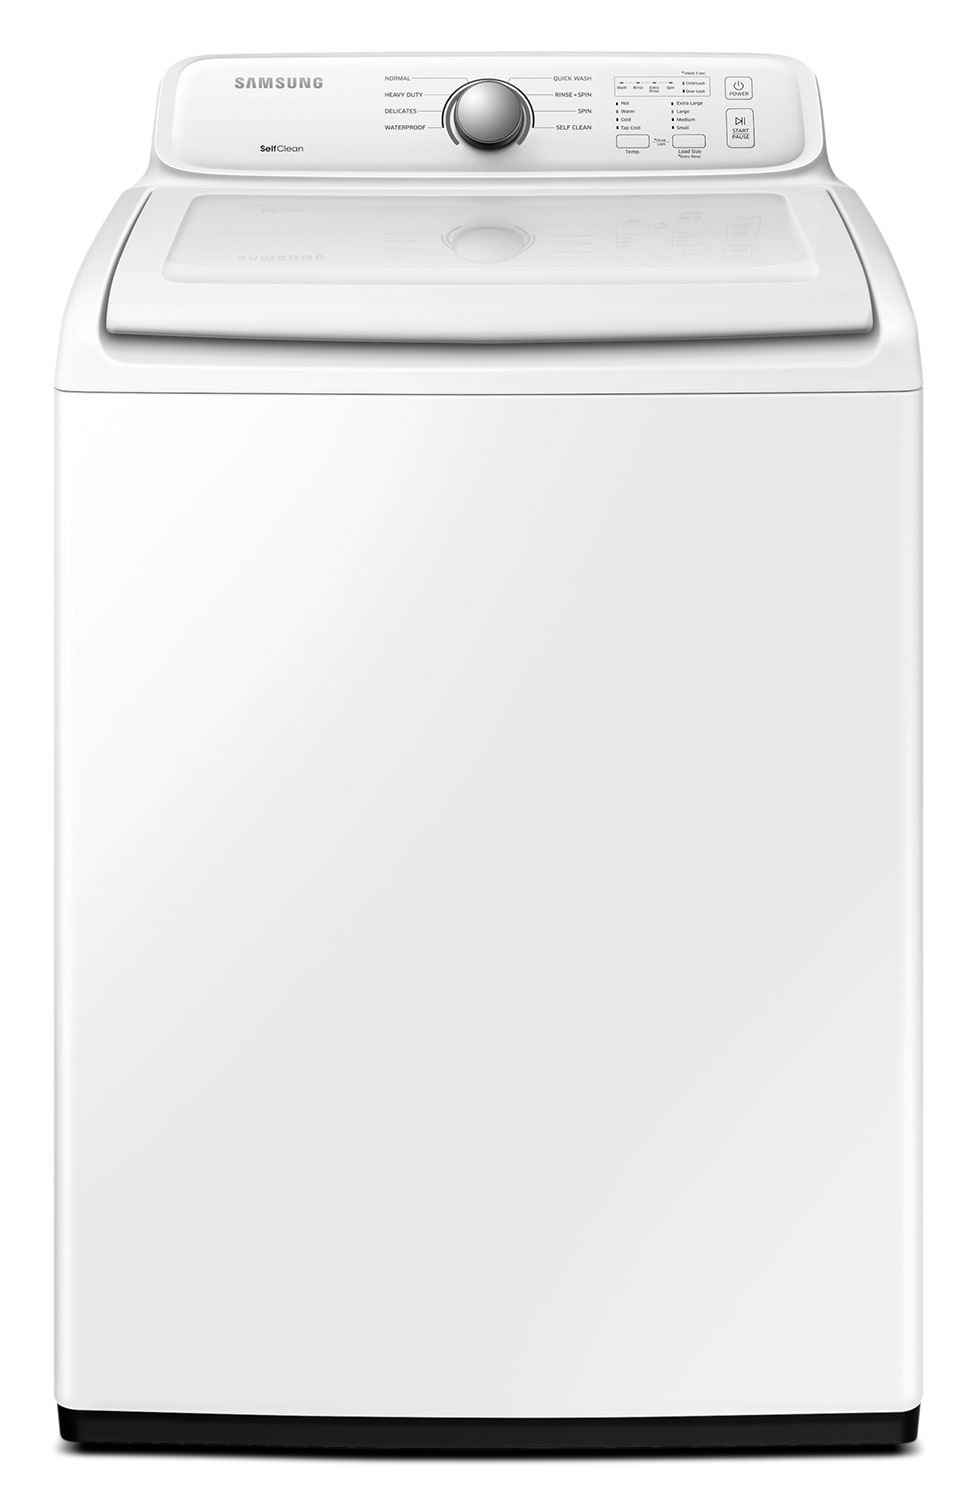 Samsung White Top-Load Washer (4.8 Cu. Ft. IEC) - WA40J3000AW/A2